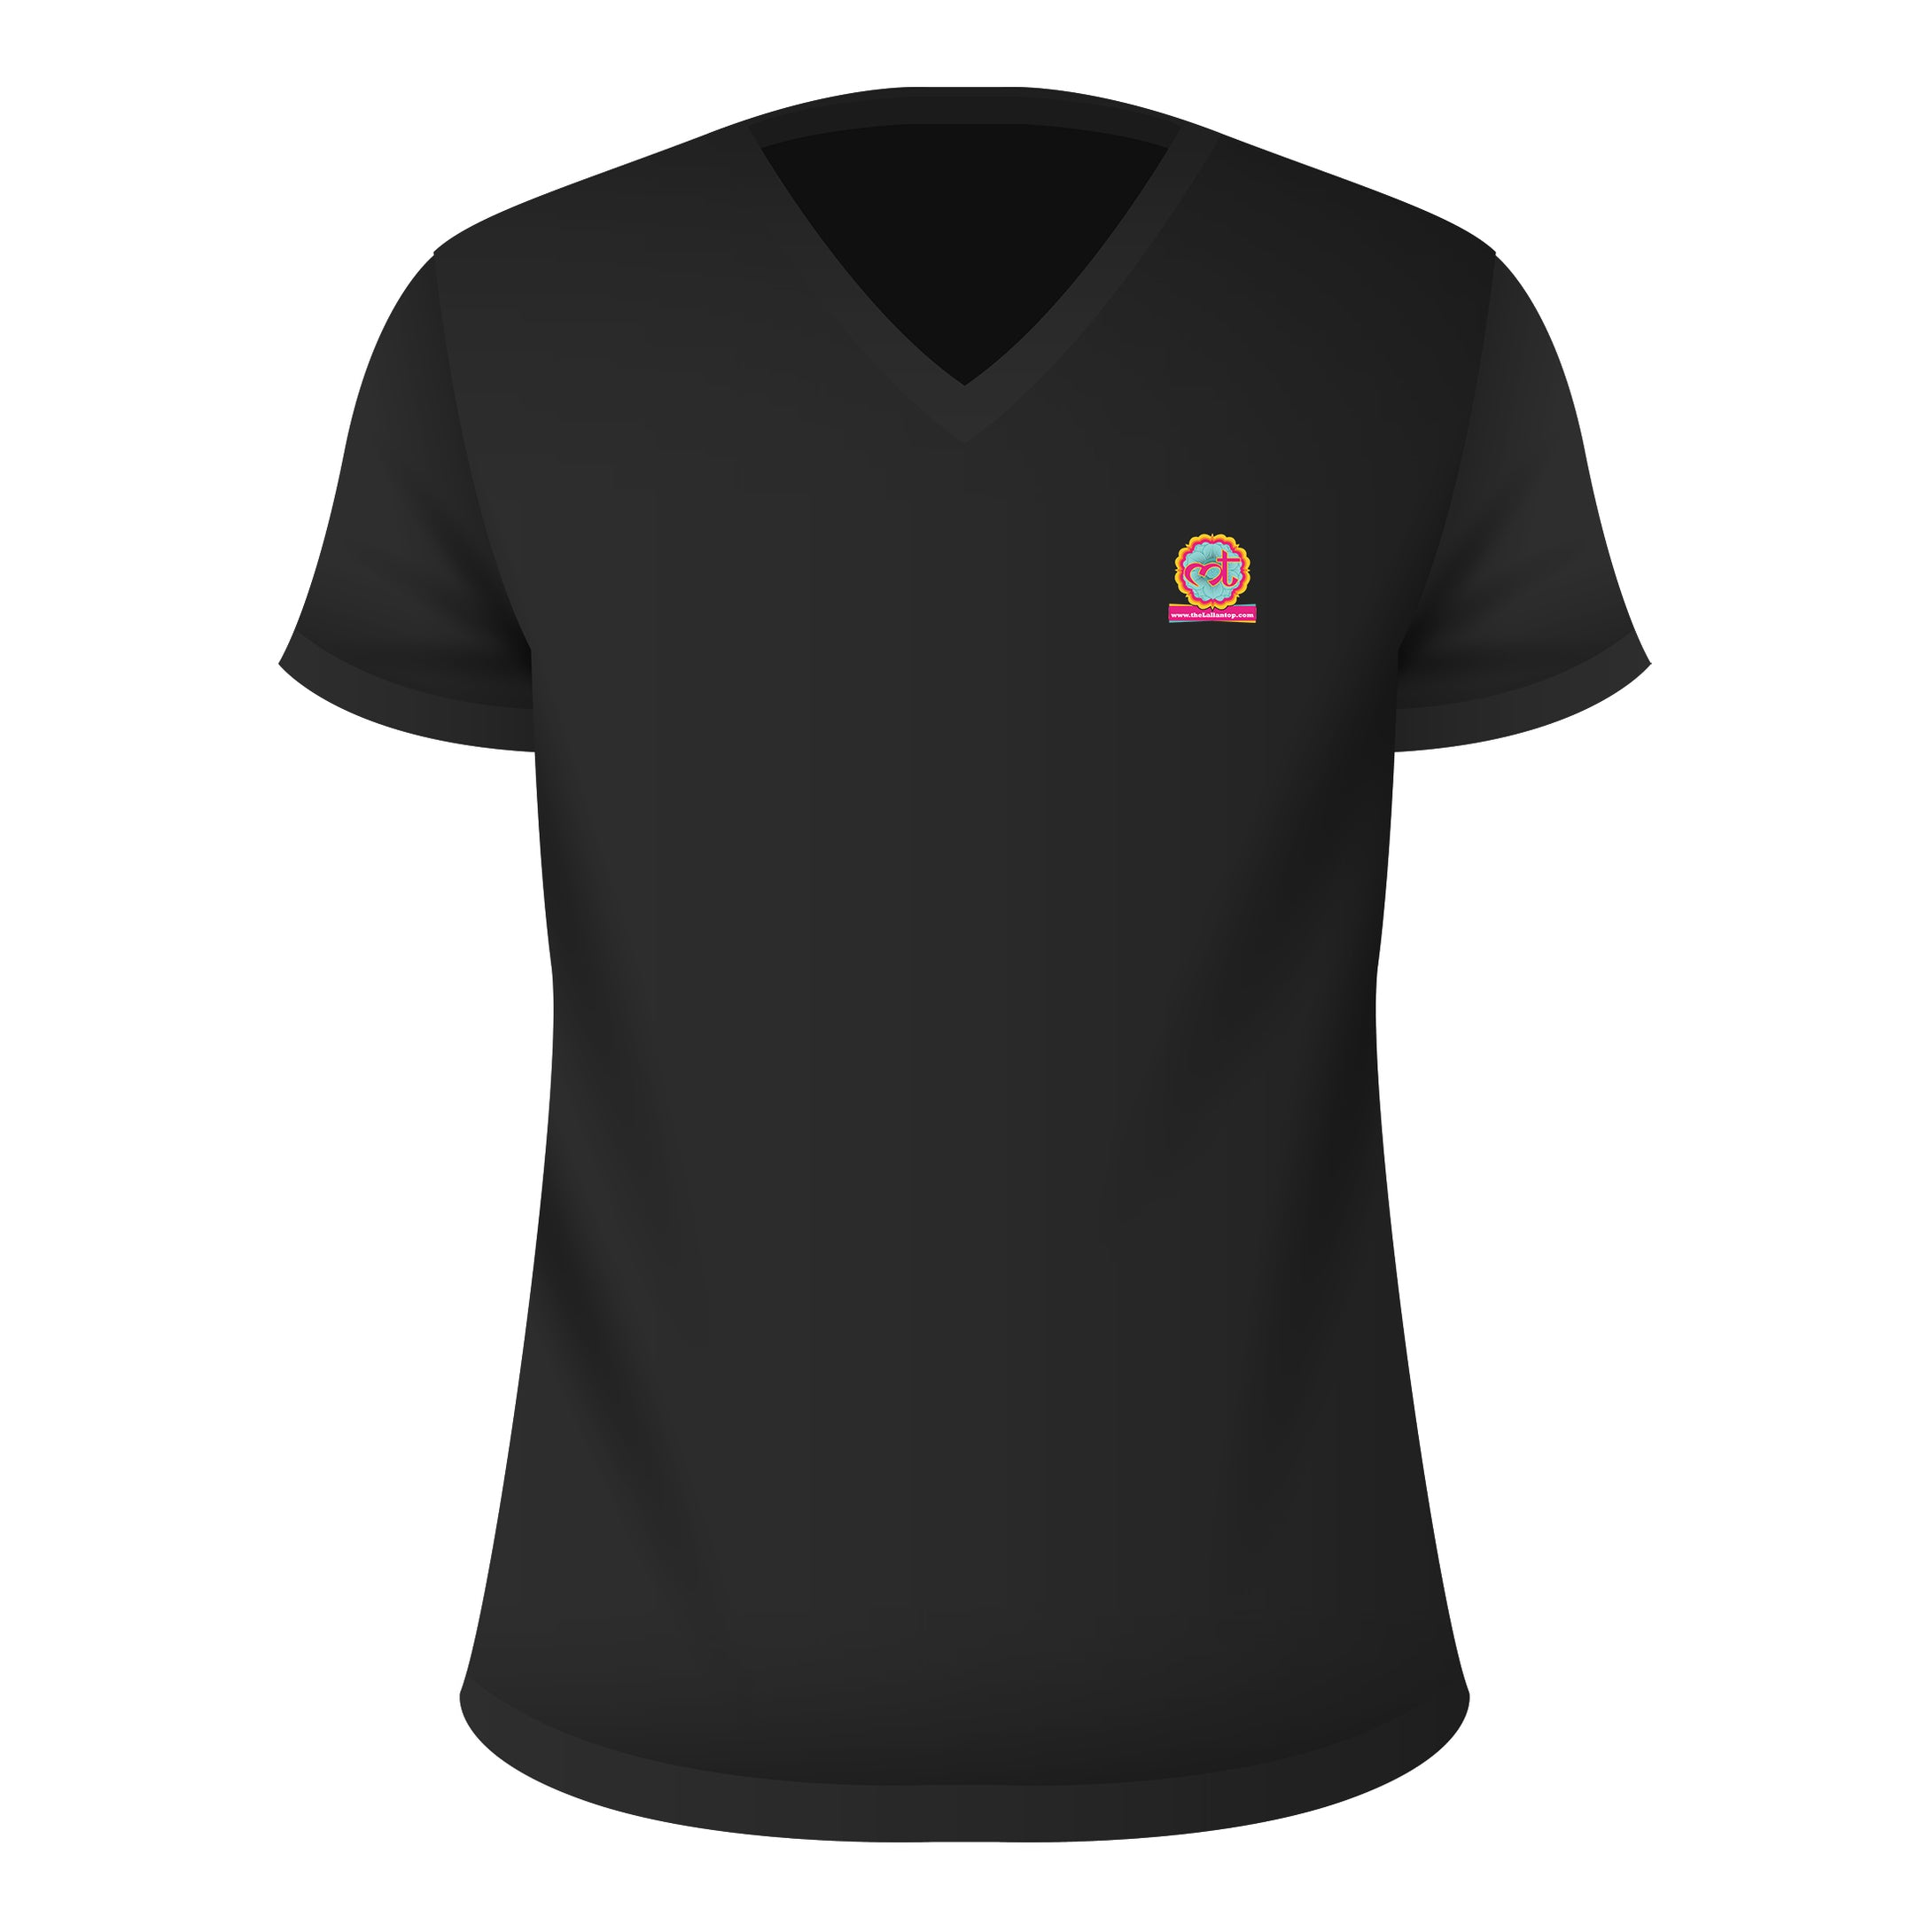 V Neck T-Shirt Black